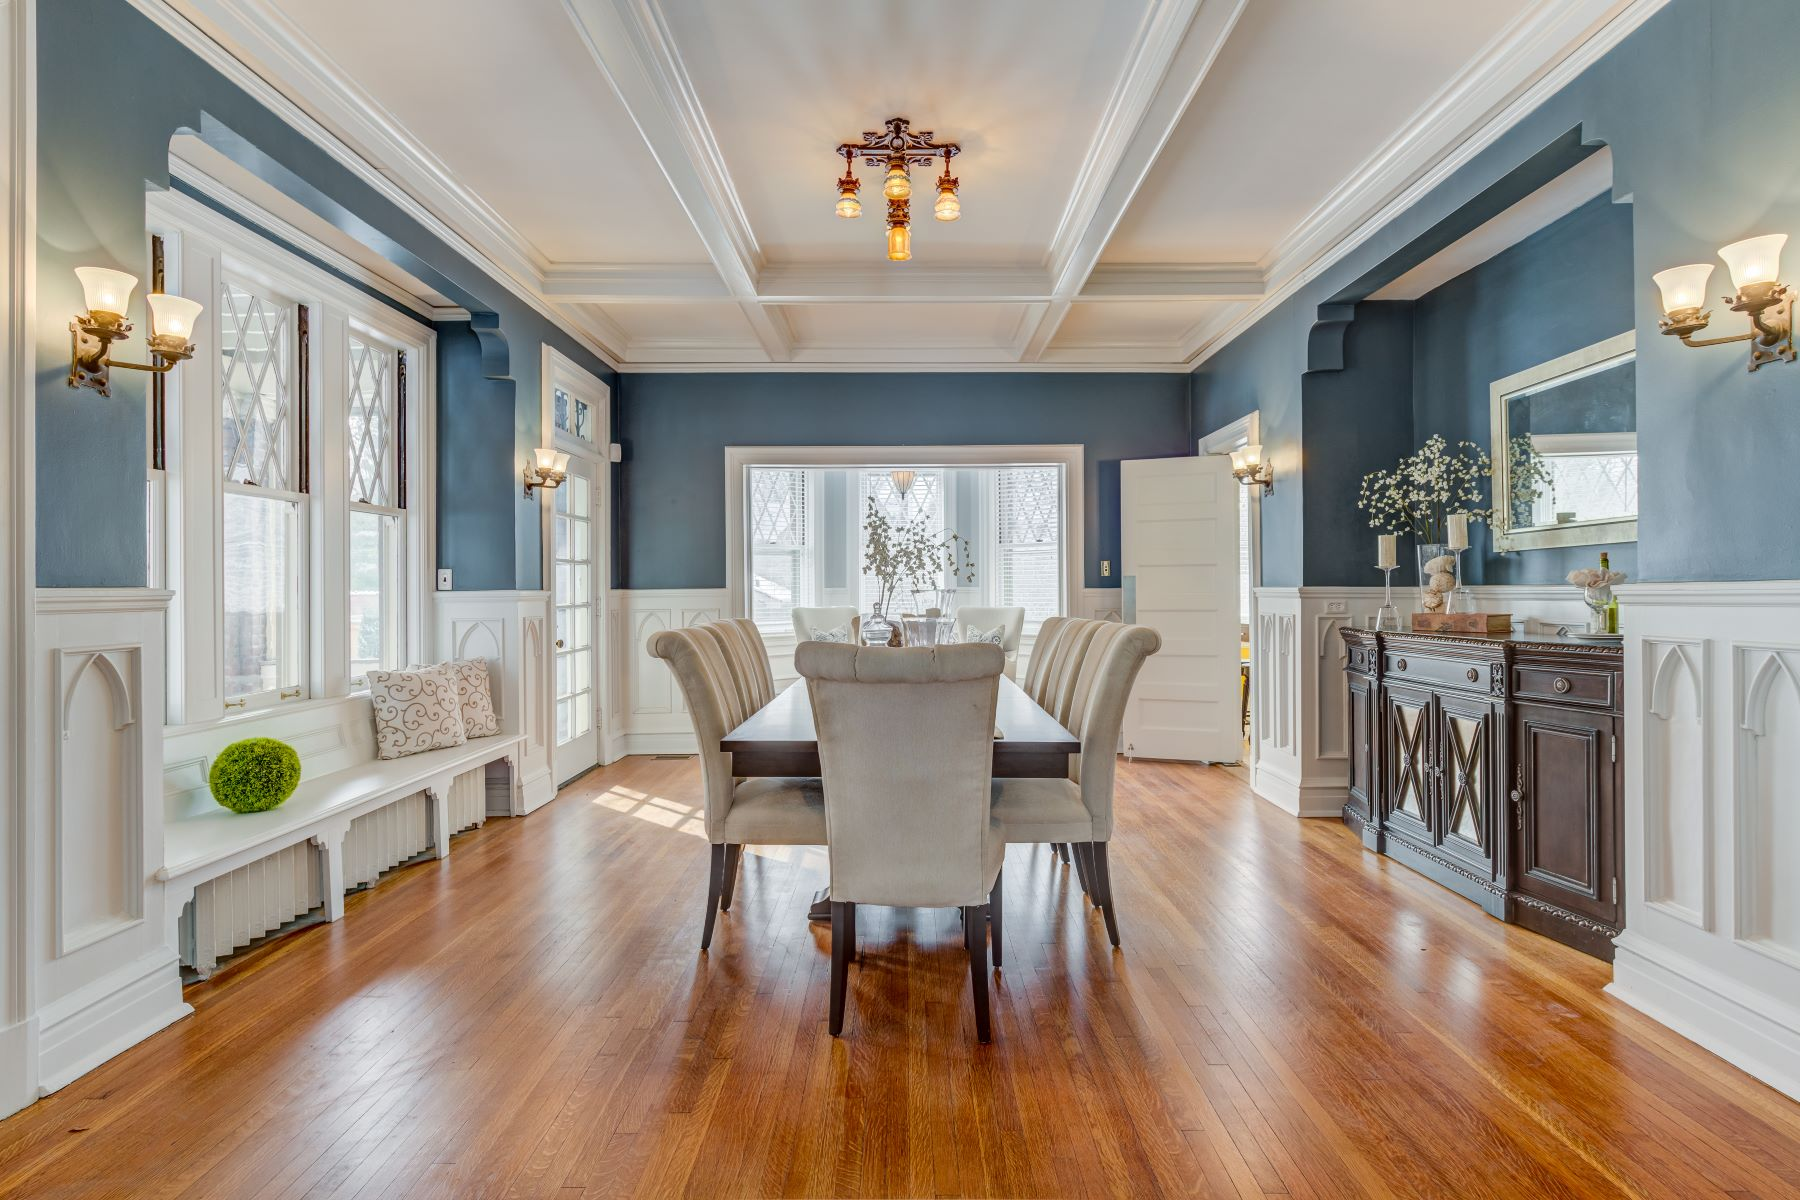 Additional photo for property listing at Stately Central West End home designed in 1909 by Louis Spiering 48 Washington Terrace St. Louis, Missouri 63112 United States